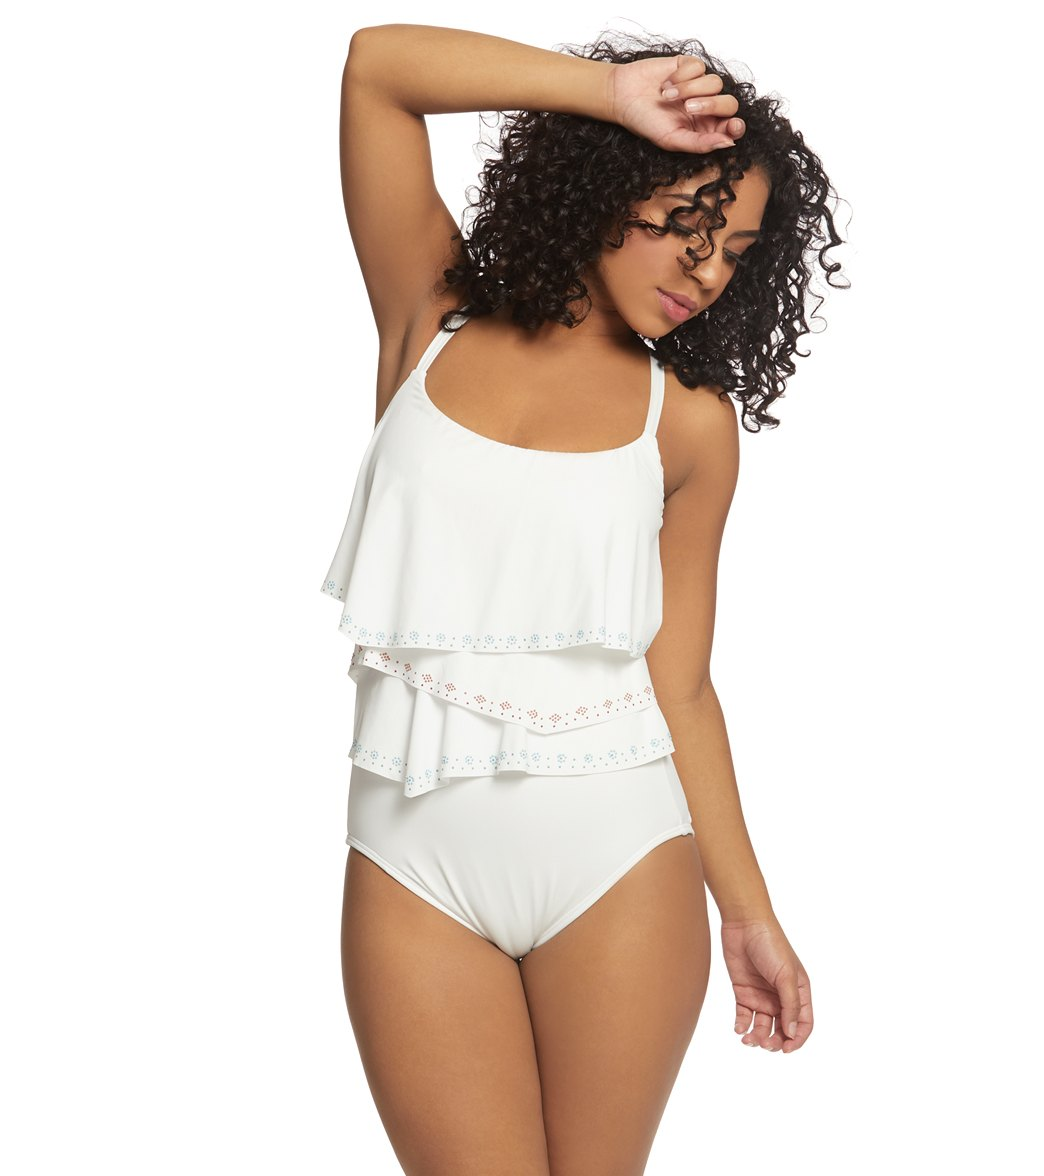 Coco Reef Hot Spots Aura Ruffle One Piece Swimsuit C-Dd Cup